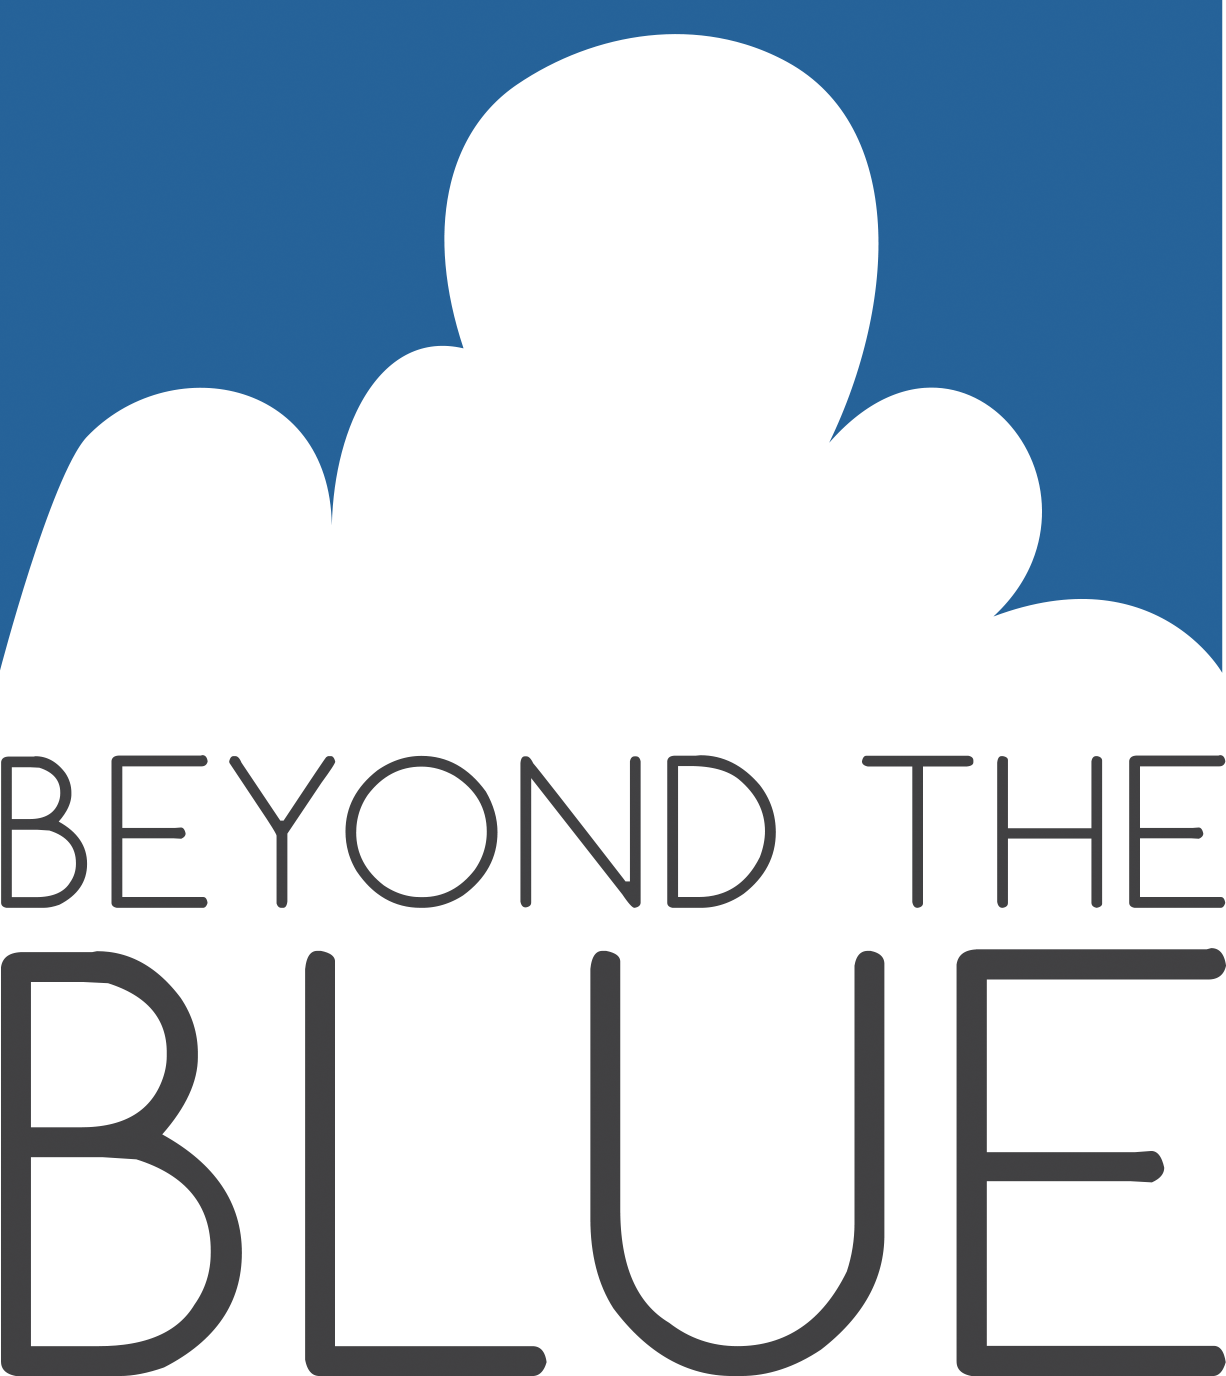 Beyond the Blue Ministries